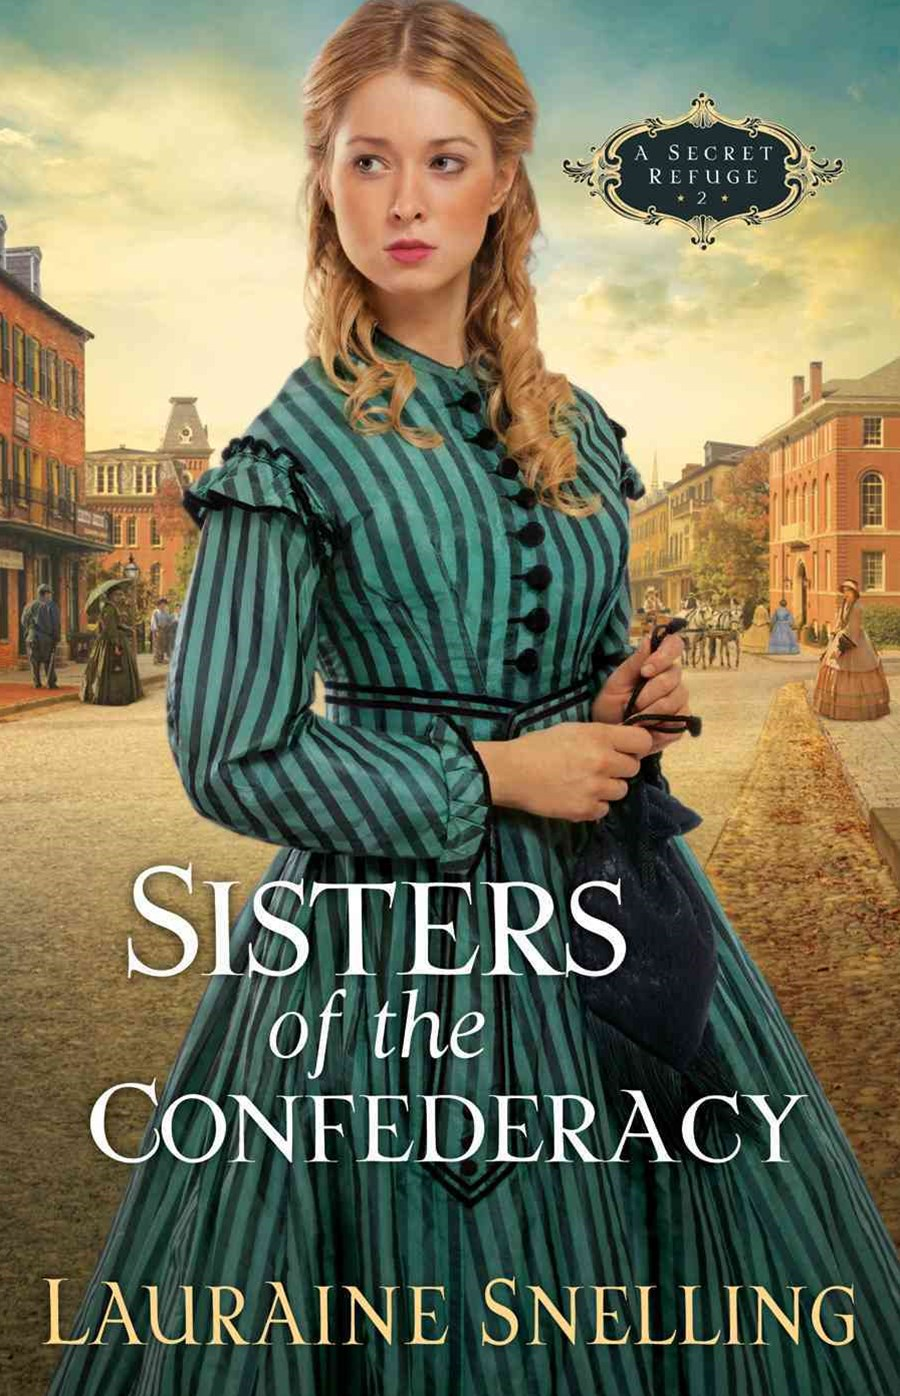 Sisters of the Confederacy: A Secret Refuge